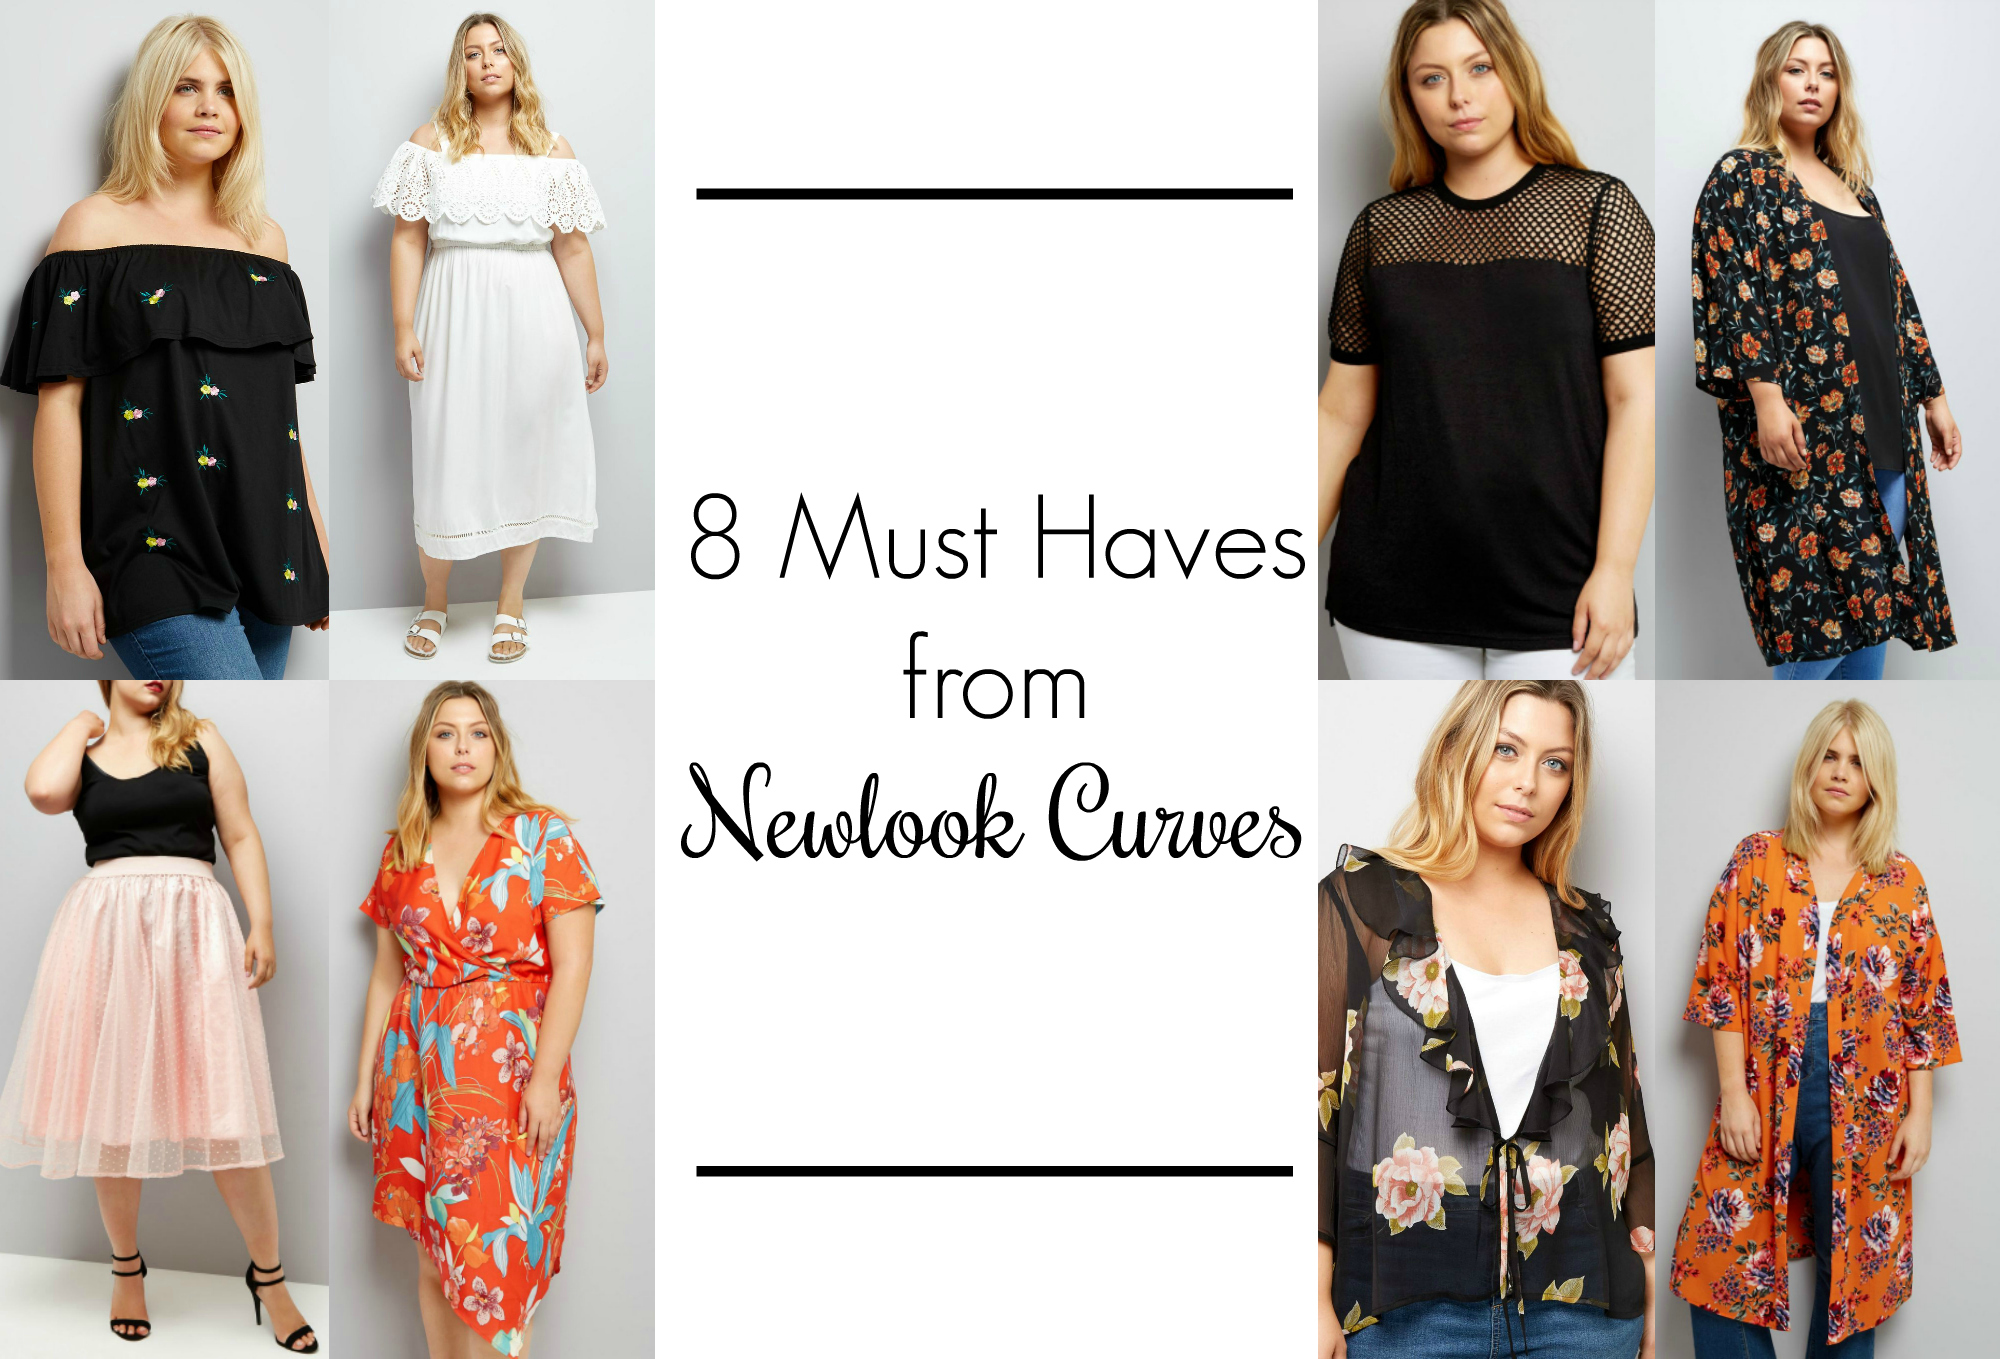 newlook curves